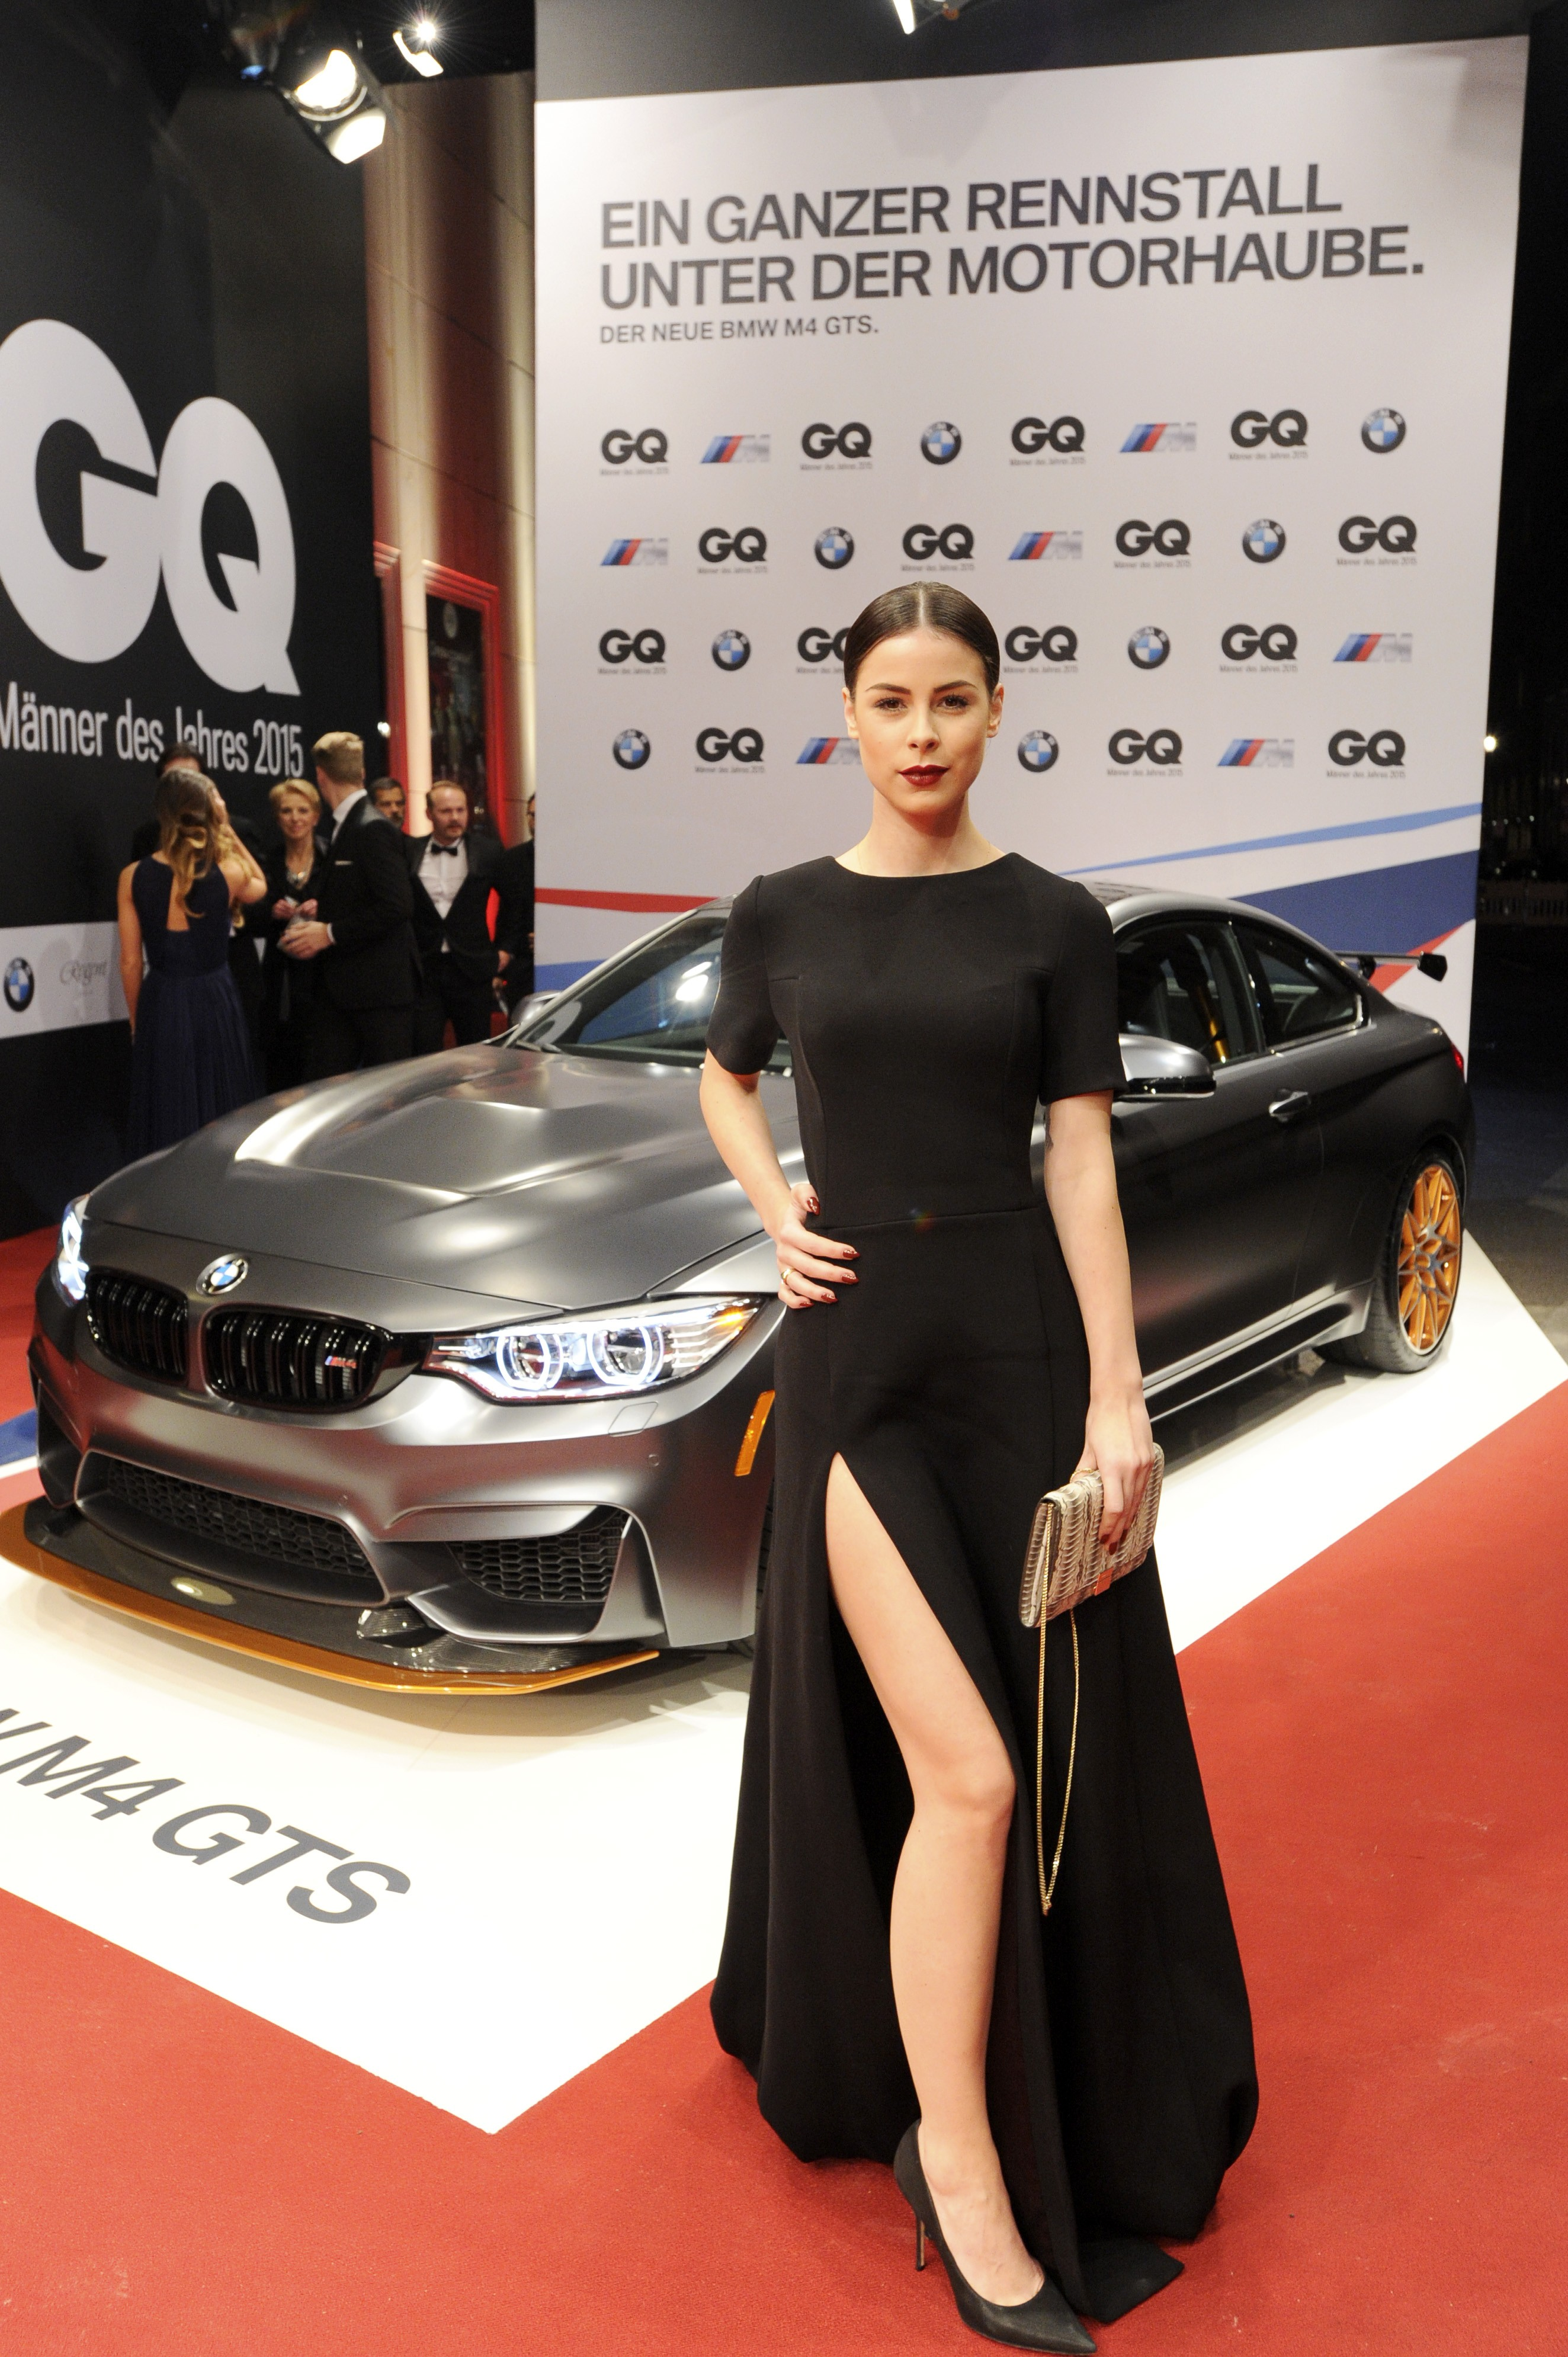 BMW Electric Car >> Celebrities Take Turns Posing with the BMW M4 GTS at GQ Men of the Year Awards - autoevolution